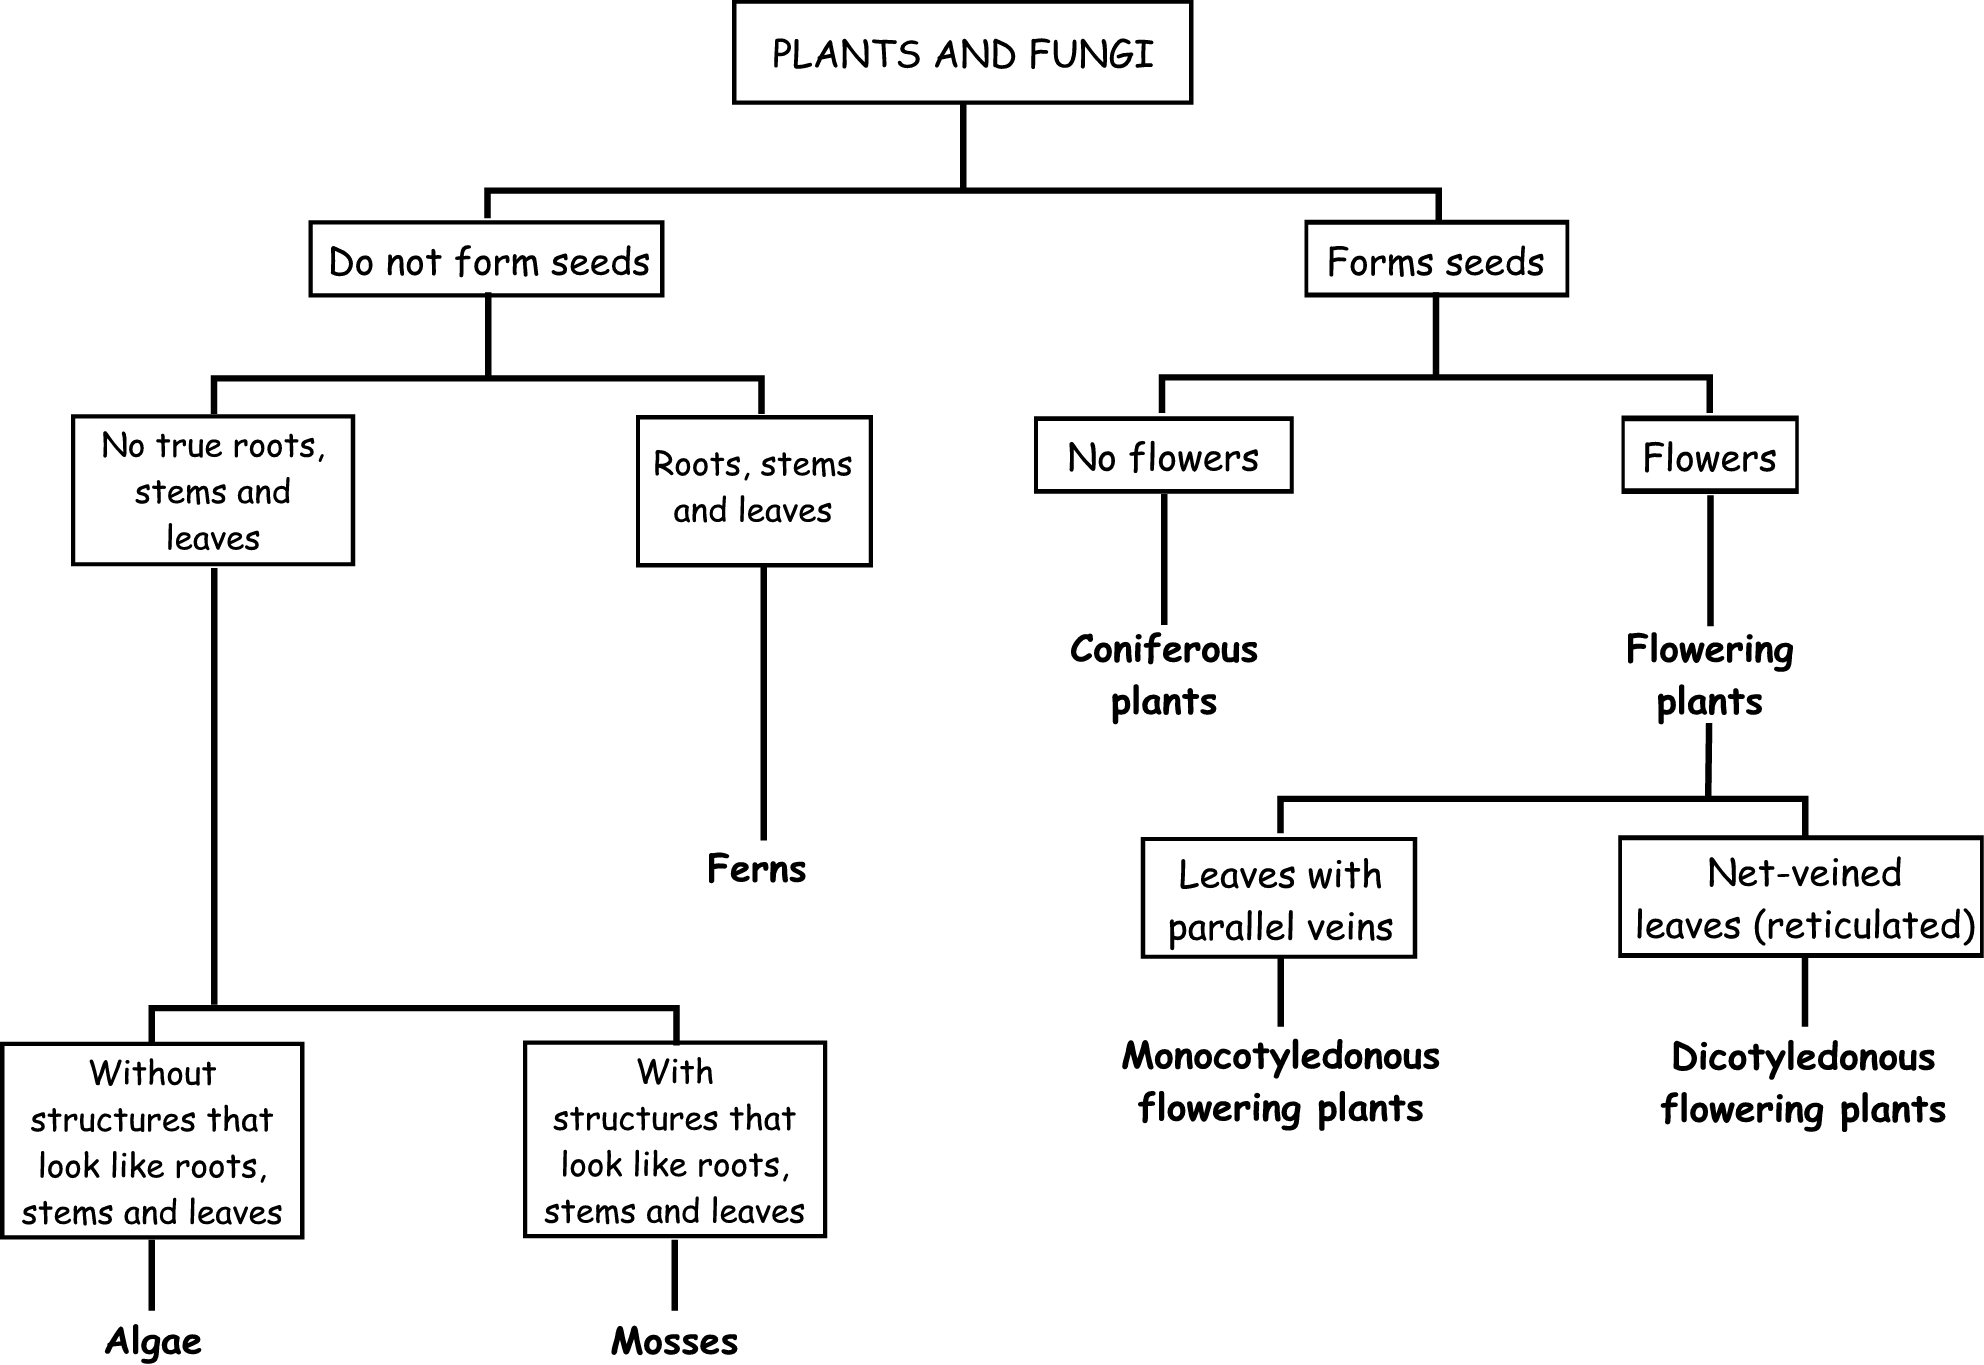 To Classify Plants According To Their Characteristics